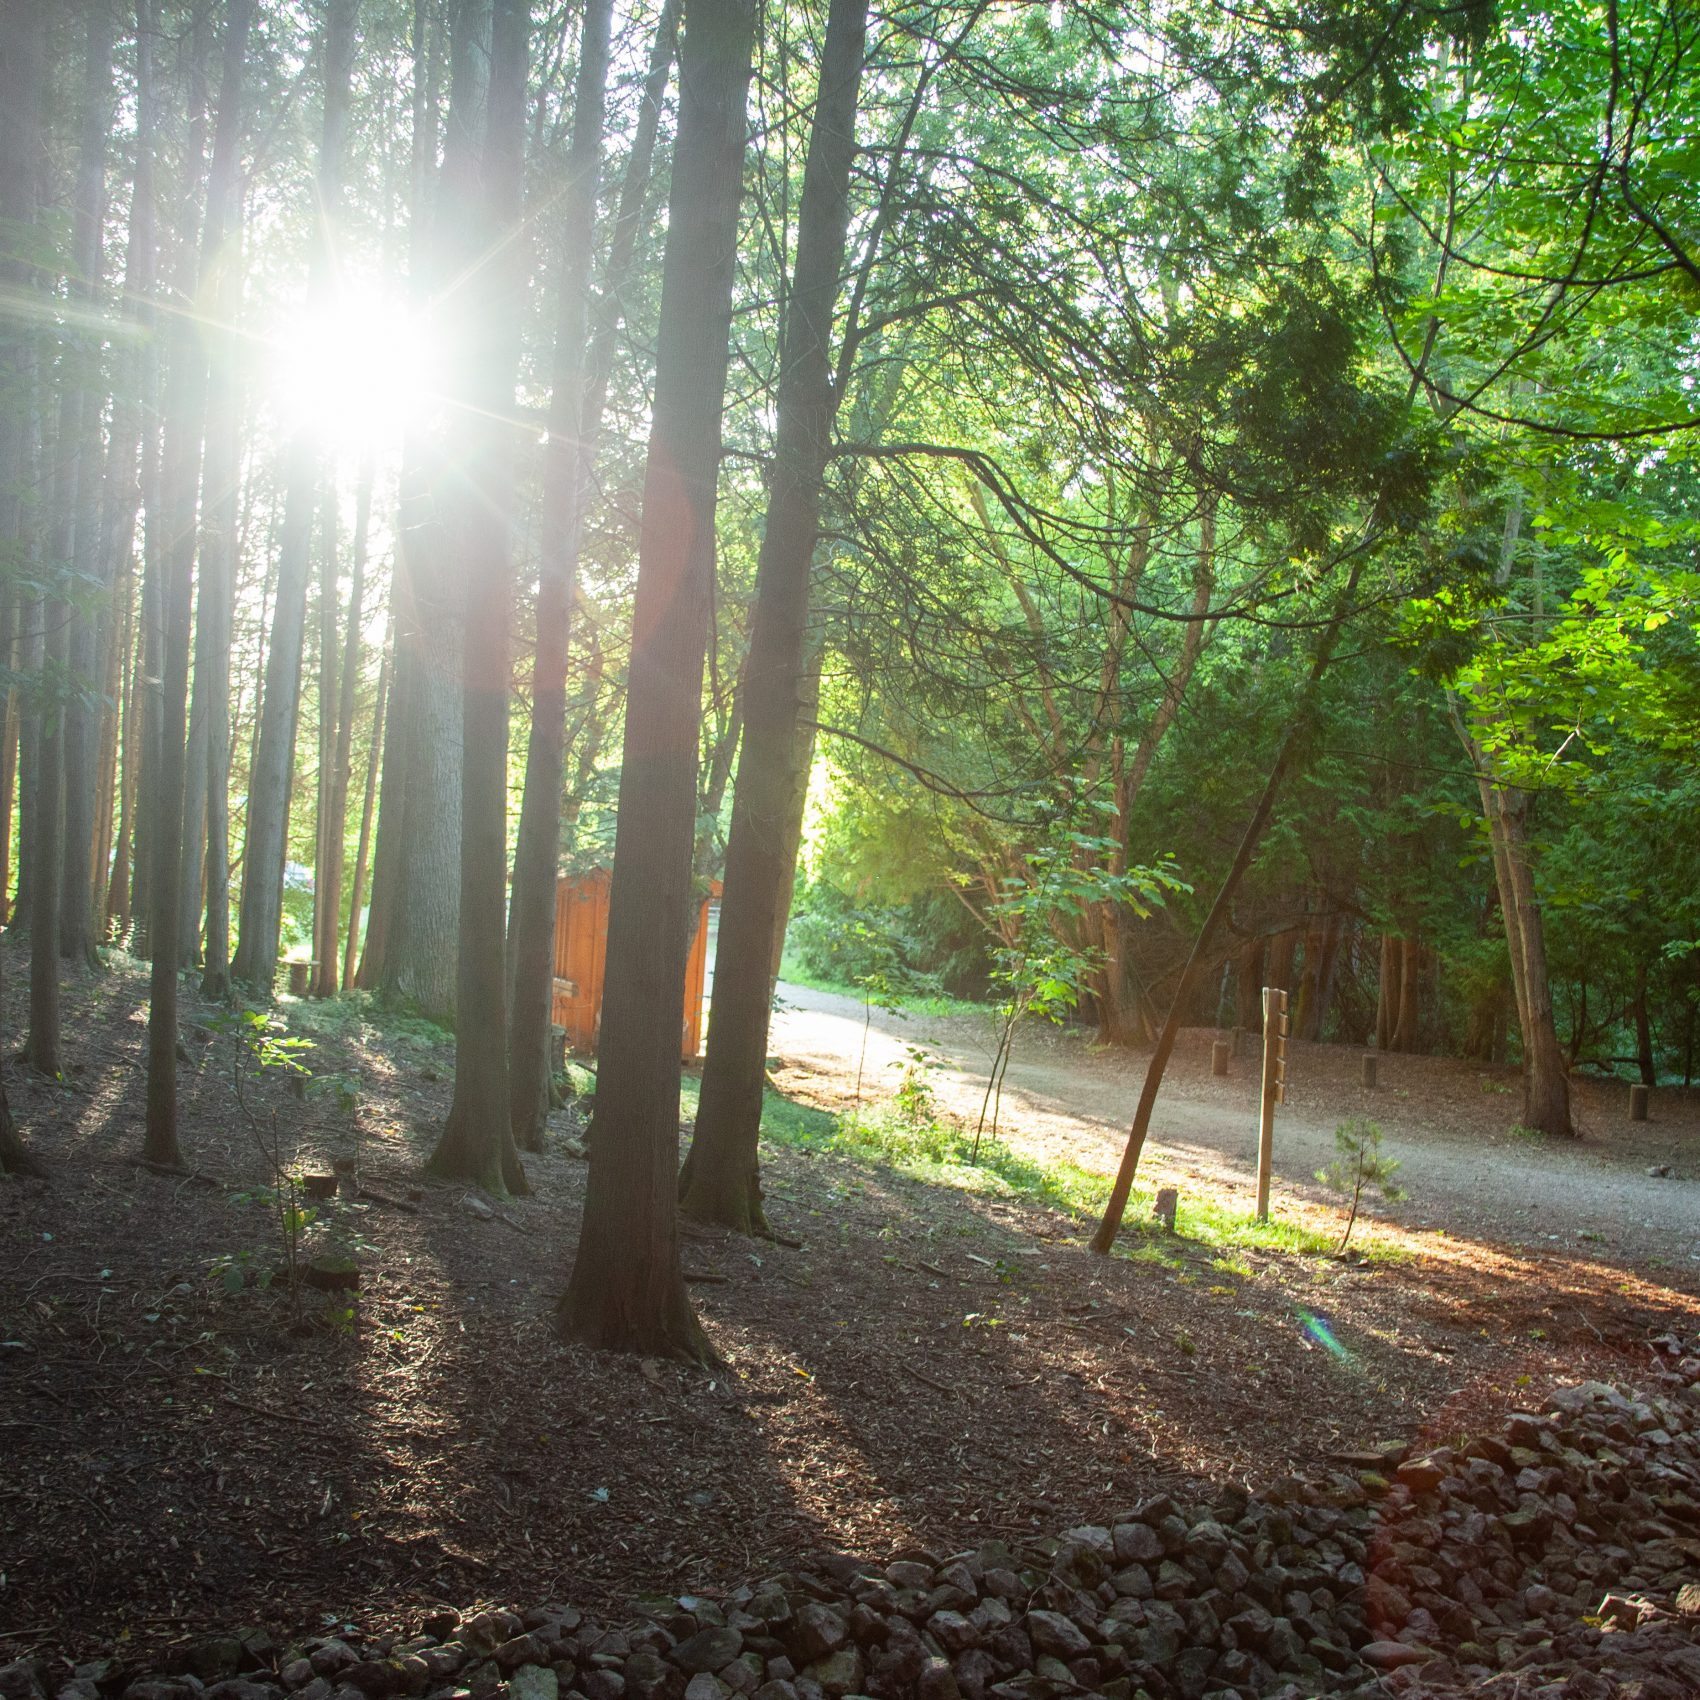 A scenic view of sun rays peaking through cedar trees by a gravel pathway.